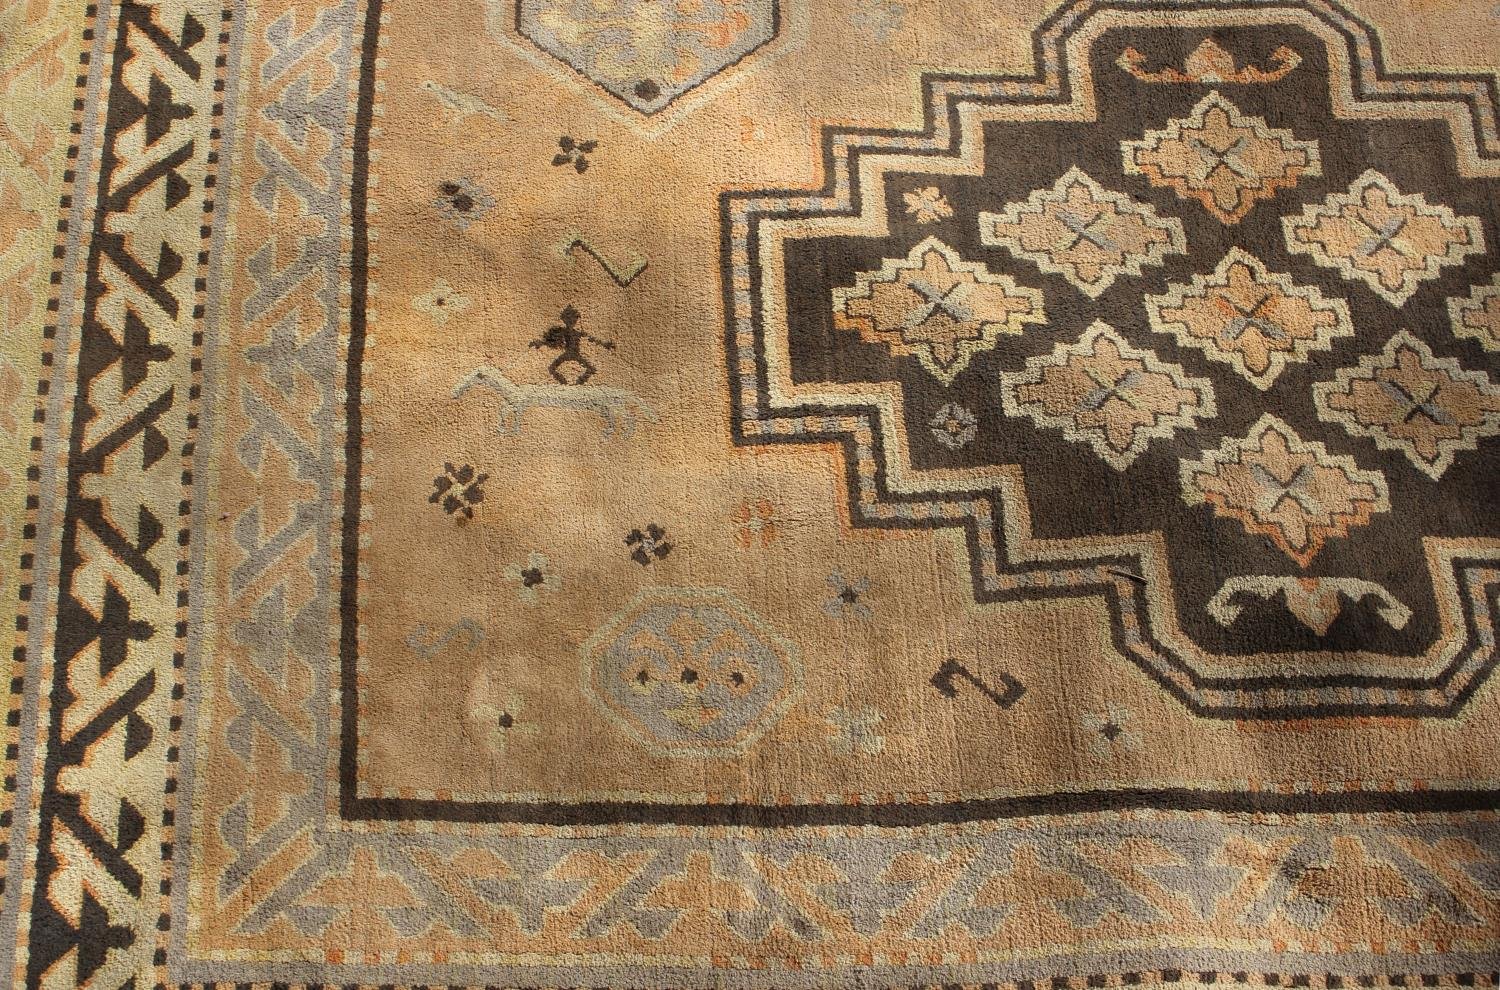 Lot 881 - Two 20th century machine woven wool work rugs,